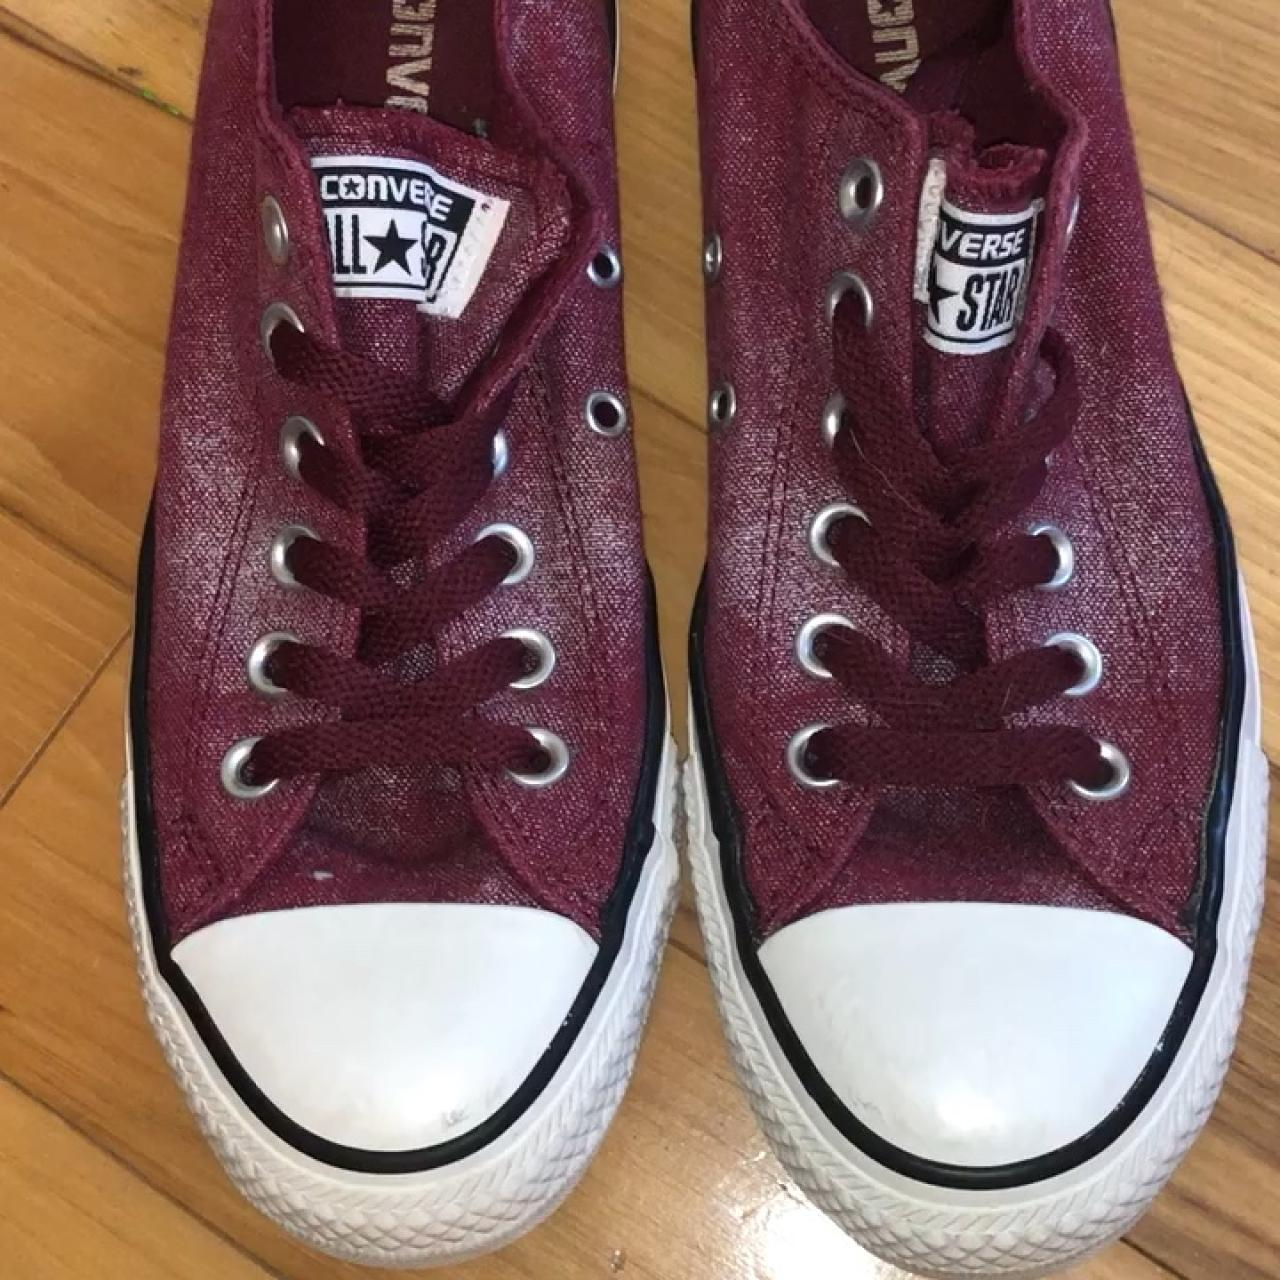 329d96ceca7 ⭐ Maroon Converse All Stars ⭐ These are brand new